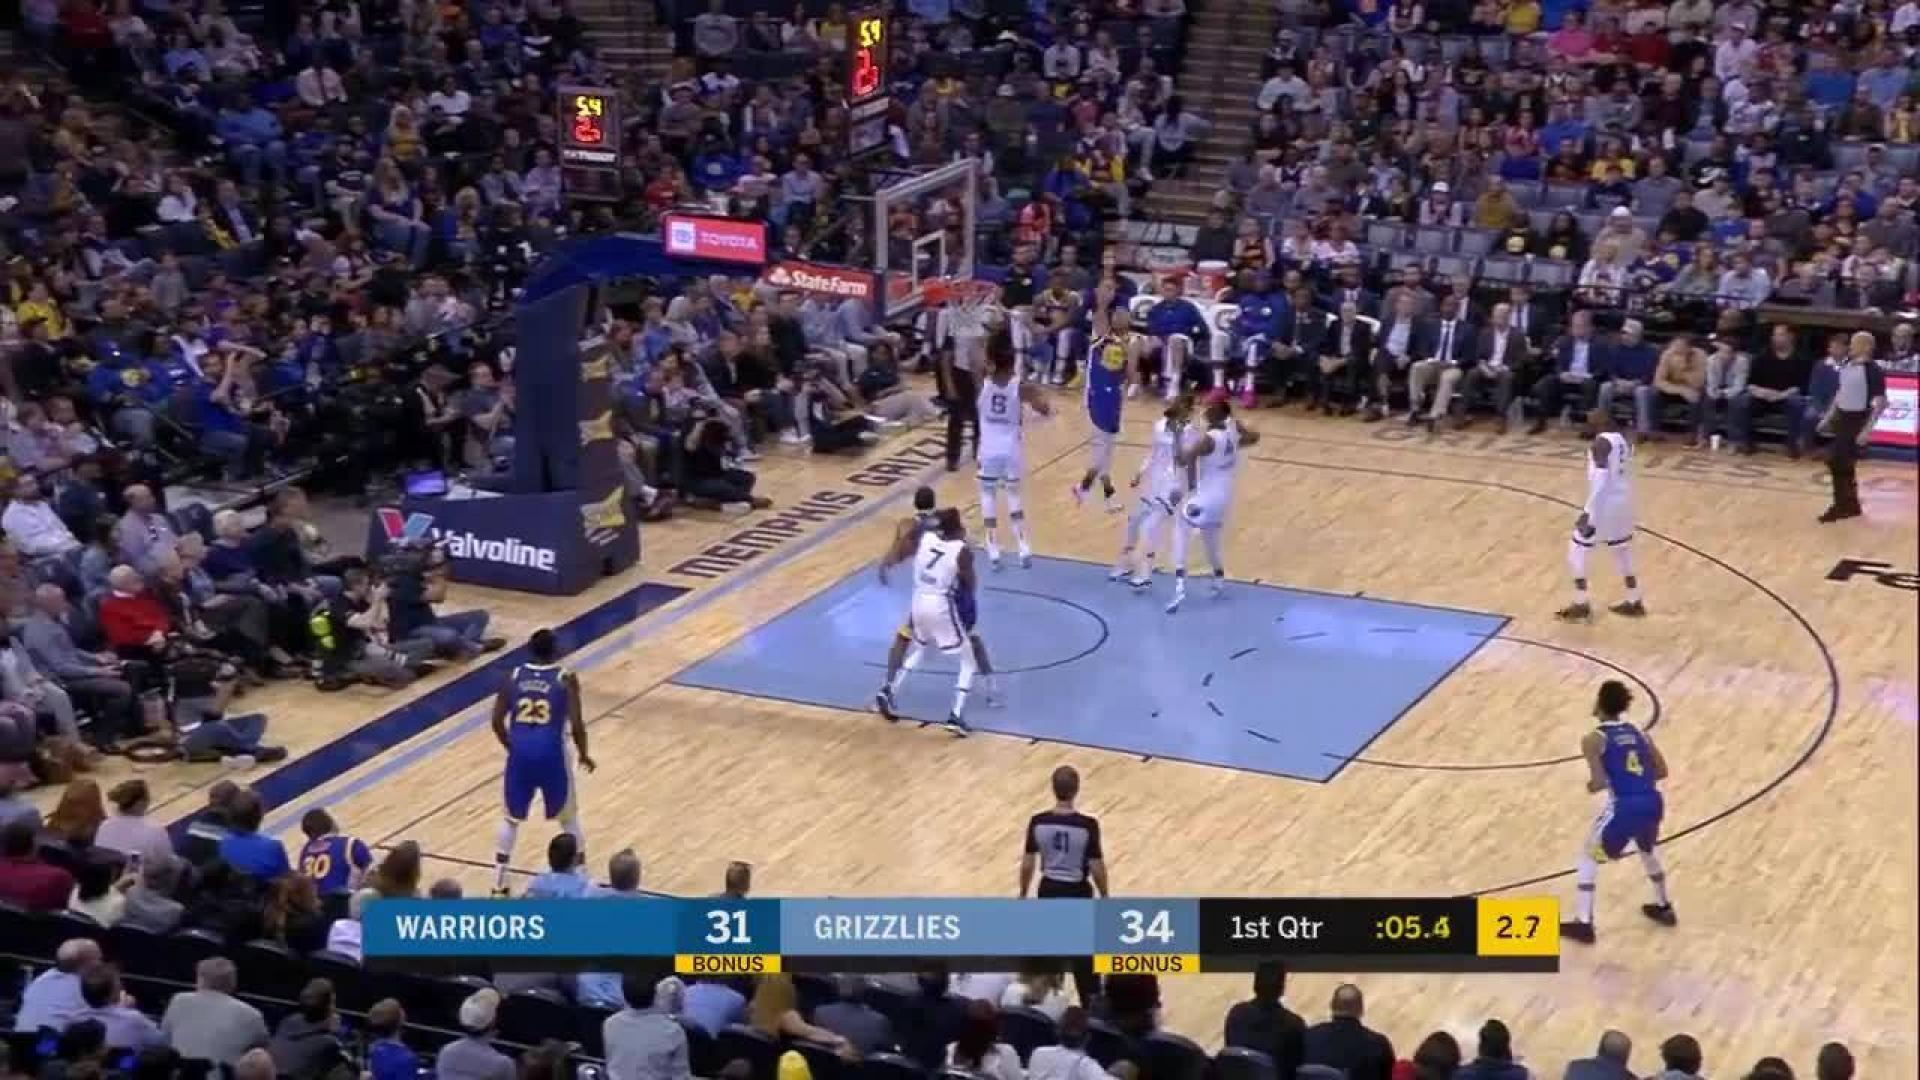 Justin Holiday knocks it down as the clock expires in the first